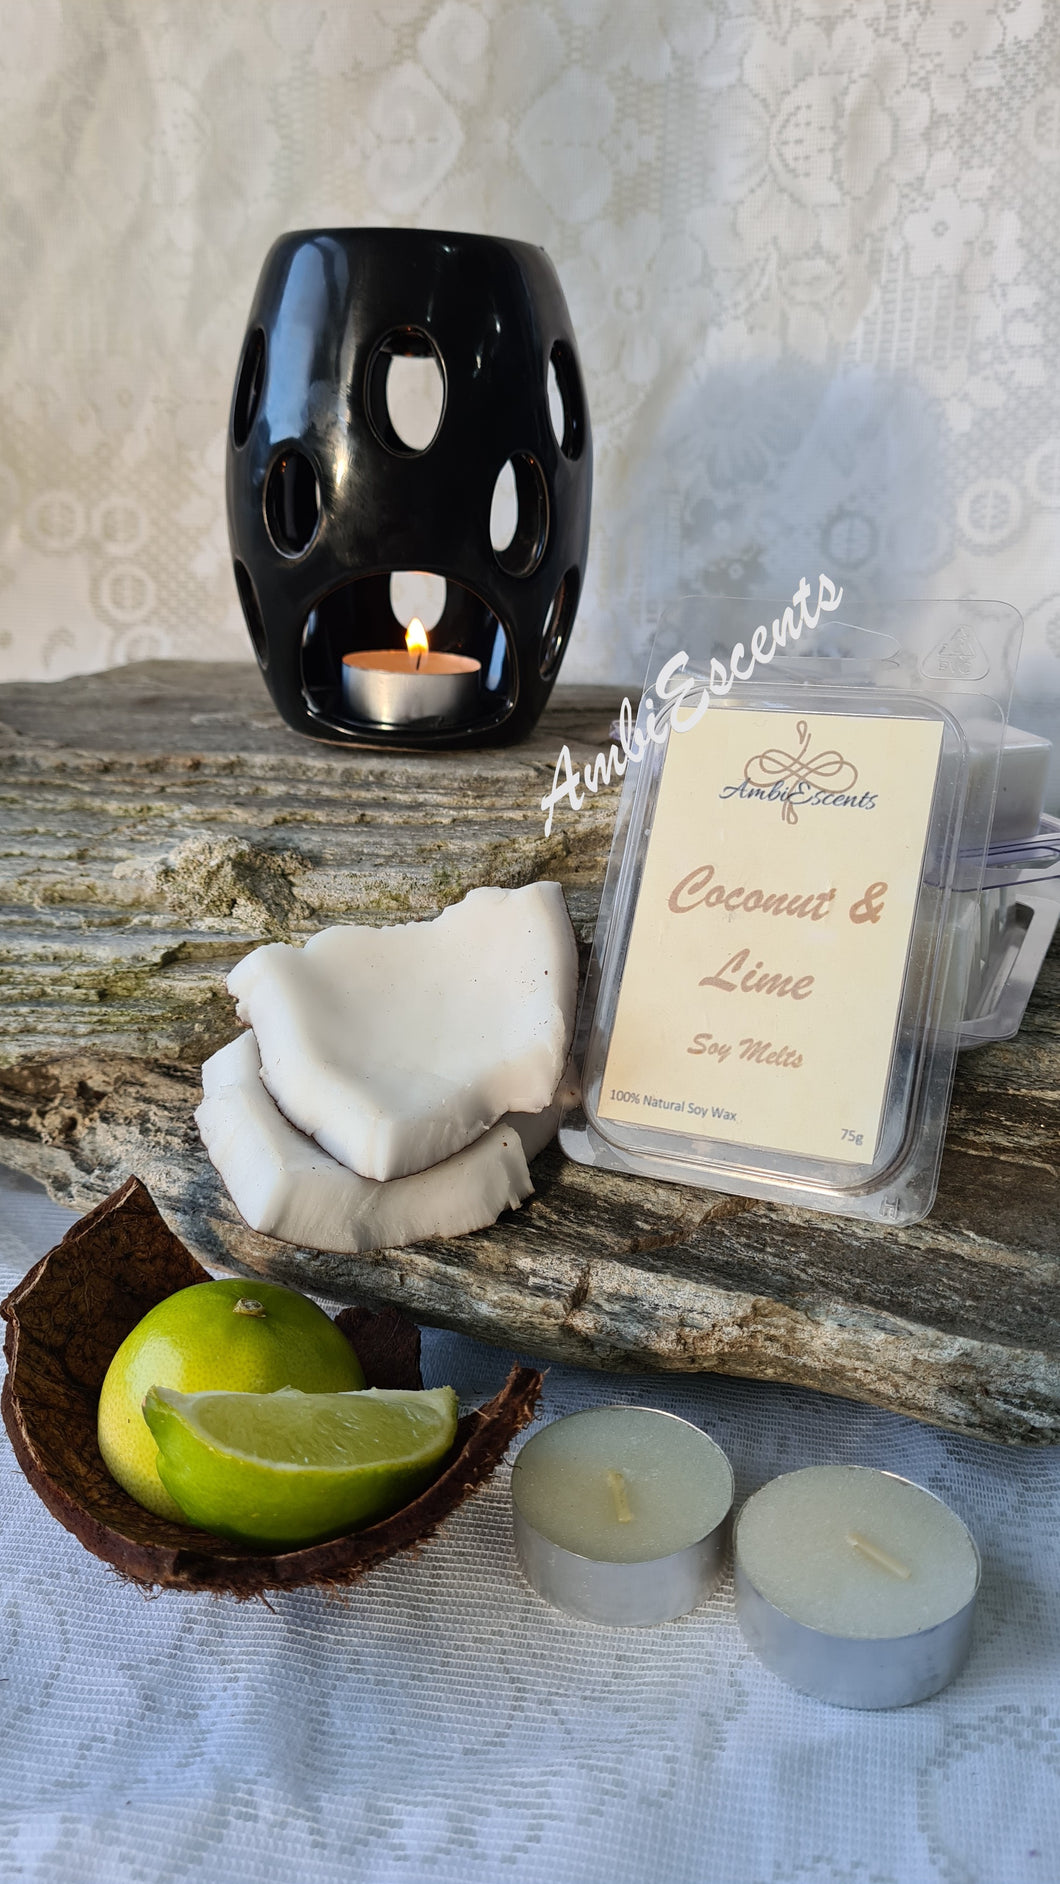 Coconut & Lime Soy Wax Melt